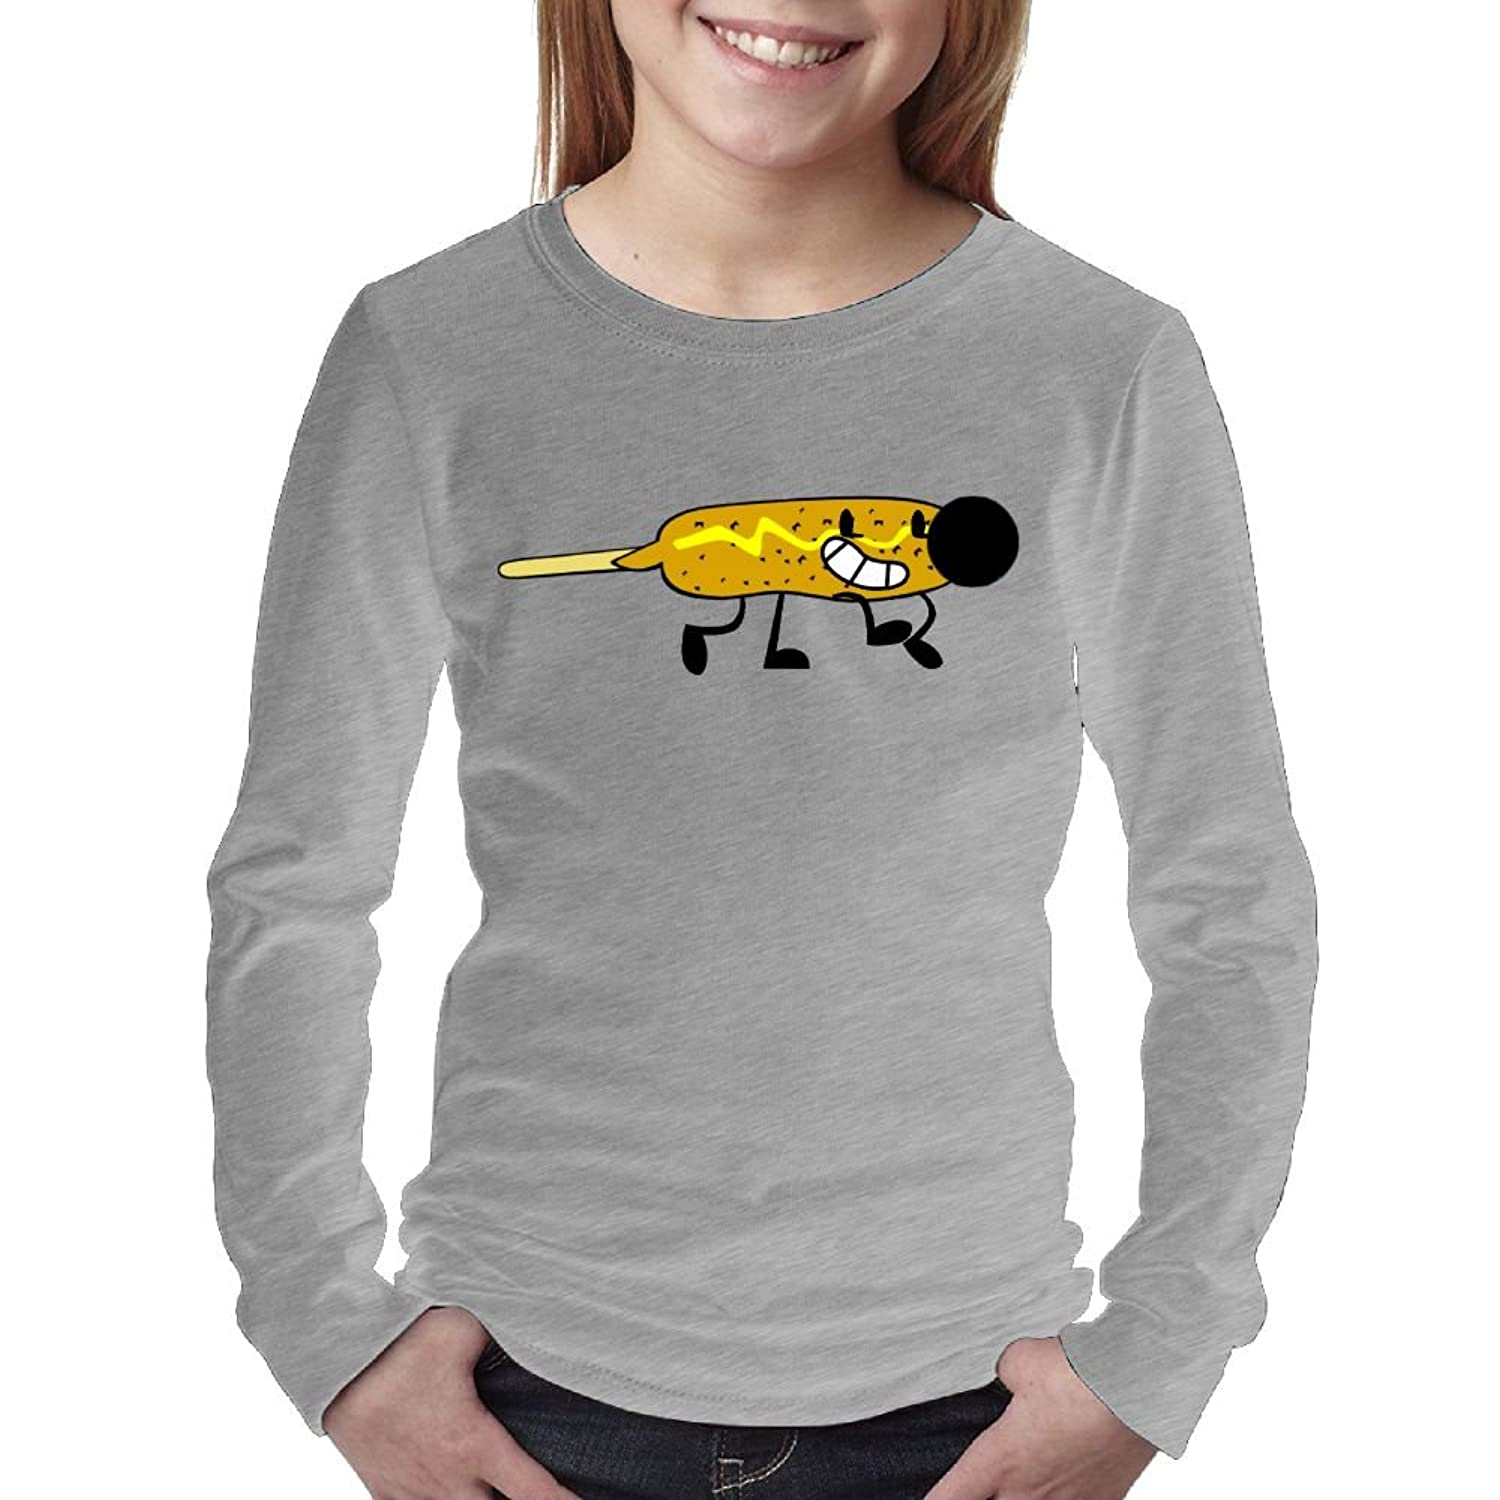 Cheap Corn Dog Sausage Dog Women's Long Sleeve T ShirtTee Round Neck Full 3D Graphic Print T Shirts for Youth Girls Kids Sizes Casual for cheap